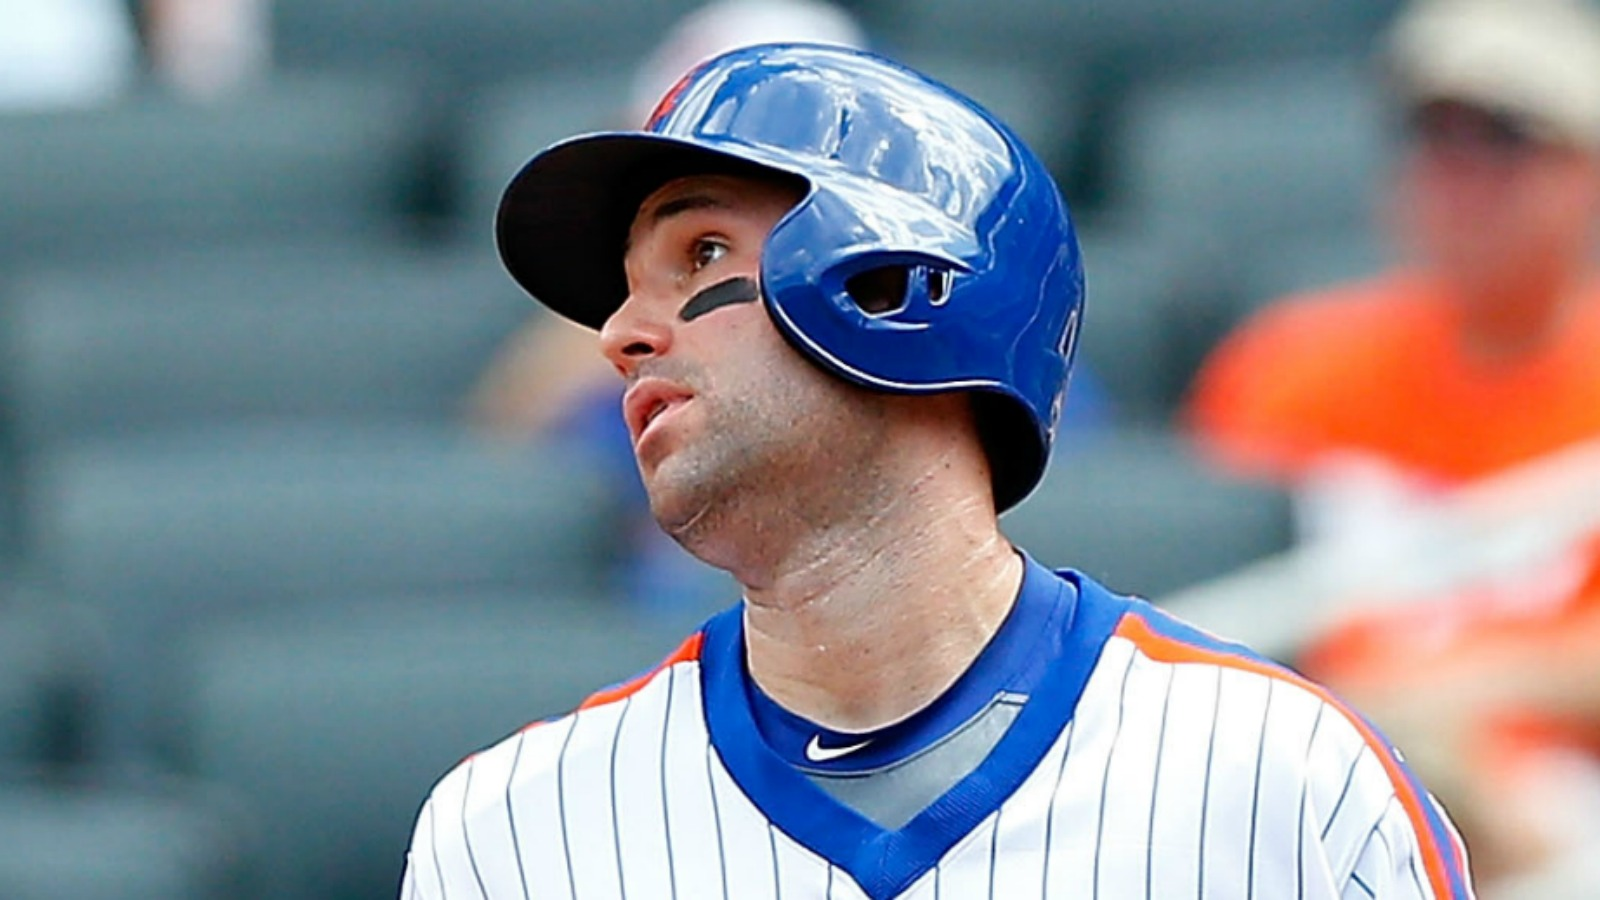 The Mets lose another starting infielder to a season-ending injury